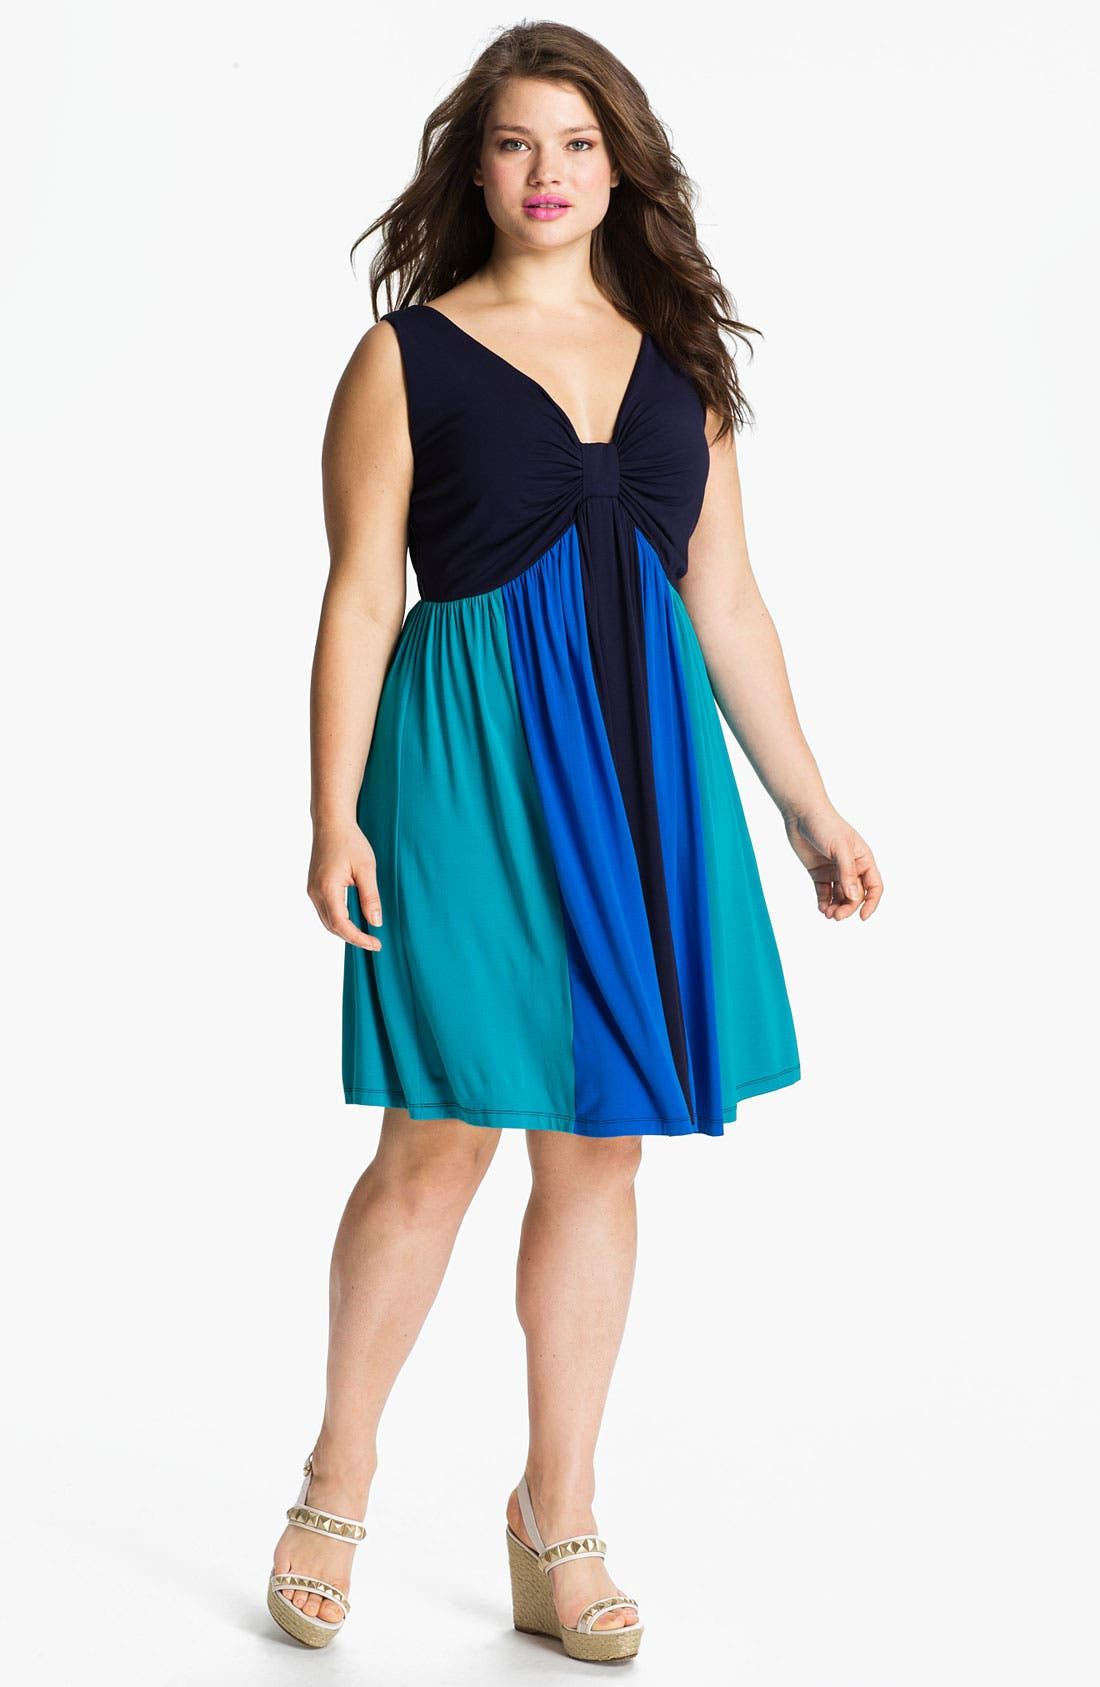 Main Image - Calvin Klein Multicolor Sleeveless Jersey Dress (Plus Size)